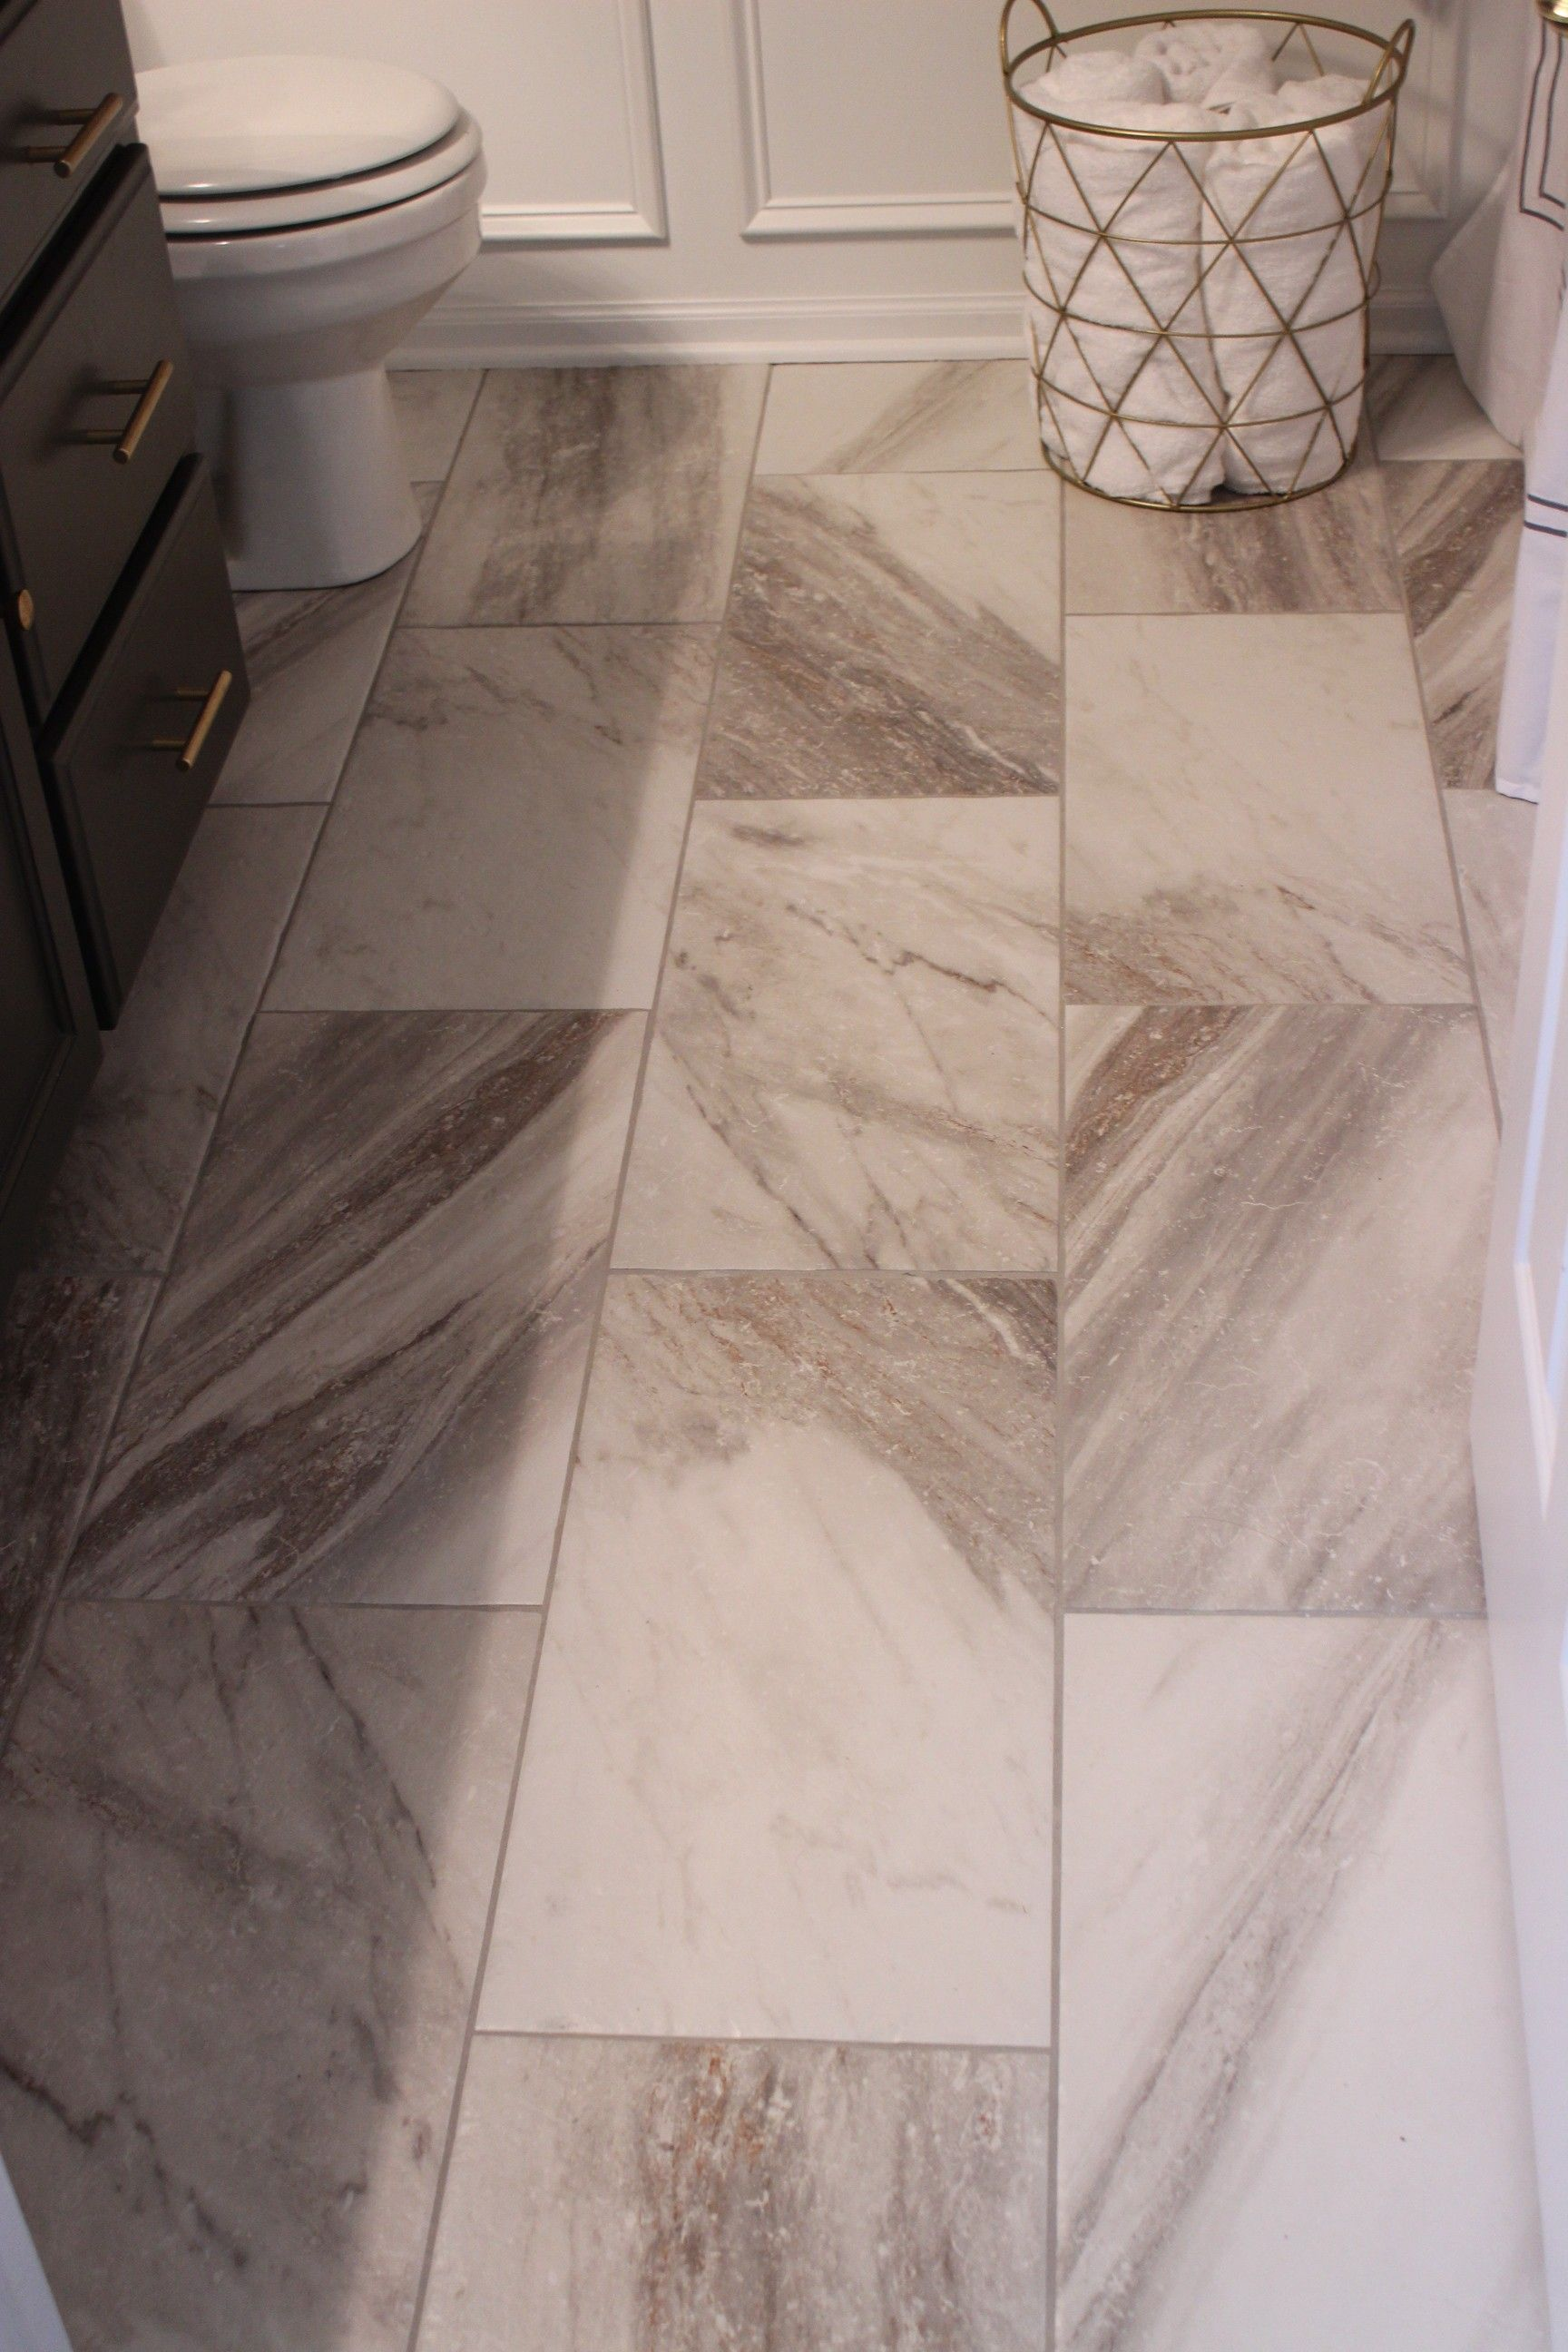 Sovereign stone pearl porcelain tile in 12 x 24 at lowes bathroom perfect ebs bathroom floor sovereign stone pearl porcelain tile in 12 x 24 at lowes dailygadgetfo Gallery